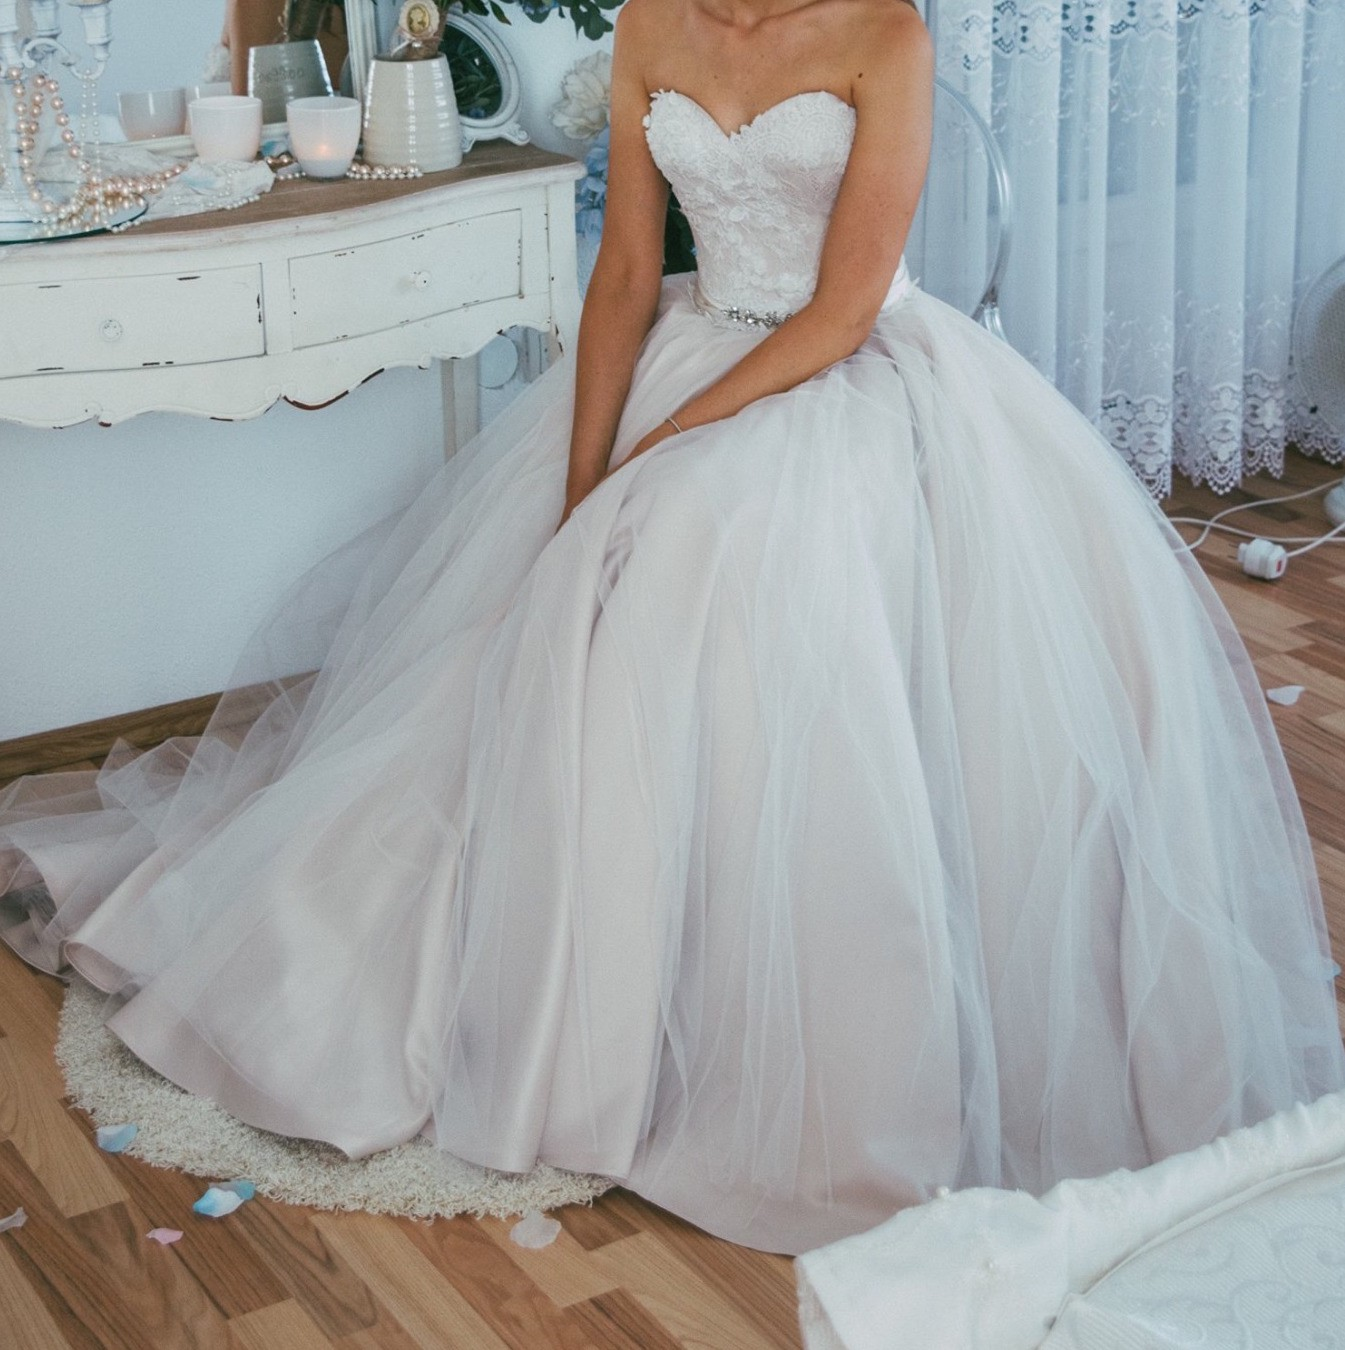 Off White Wedding Gown Meaning: Jack Sullivan Bridal Used Wedding Dress On Sale 38% Off